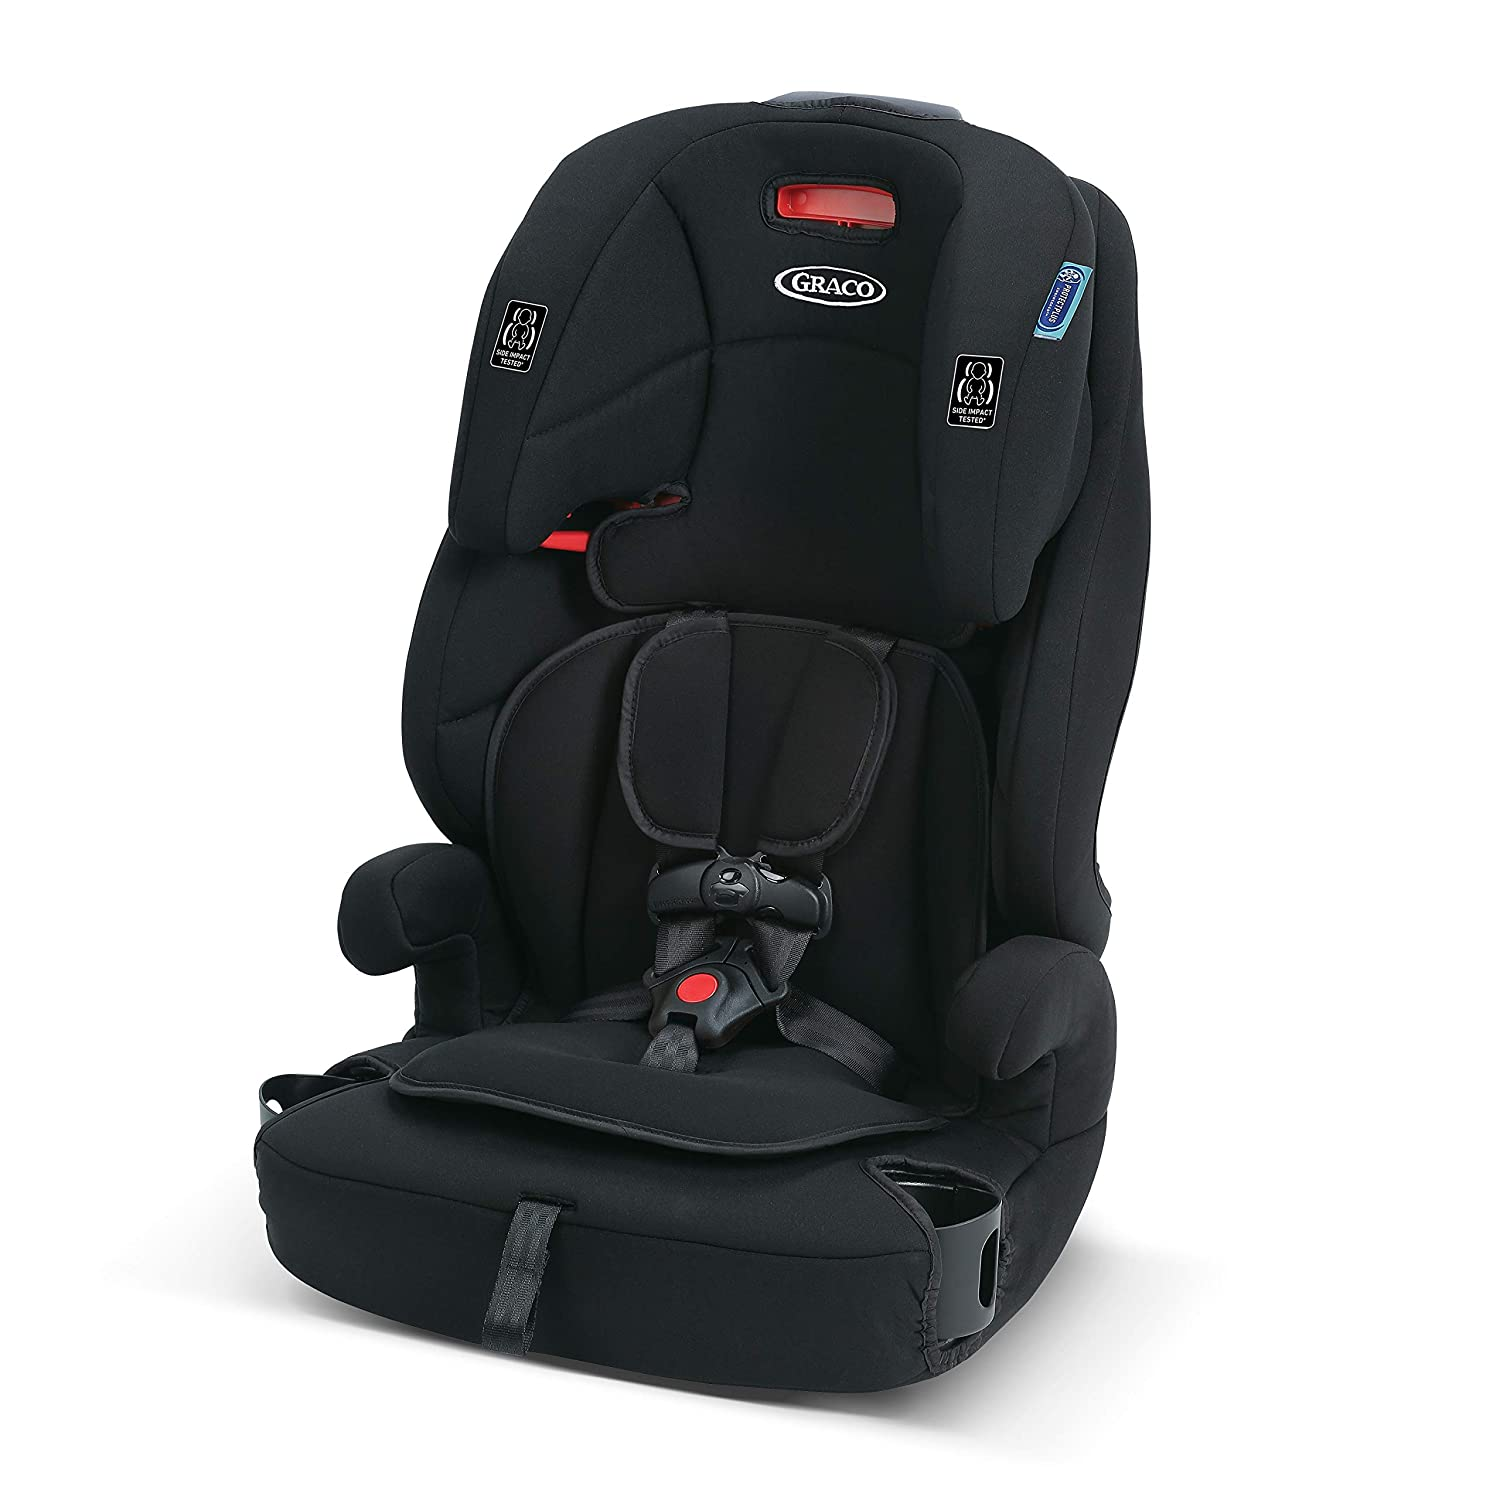 GRACO Tranzitions Harness Booster Seat